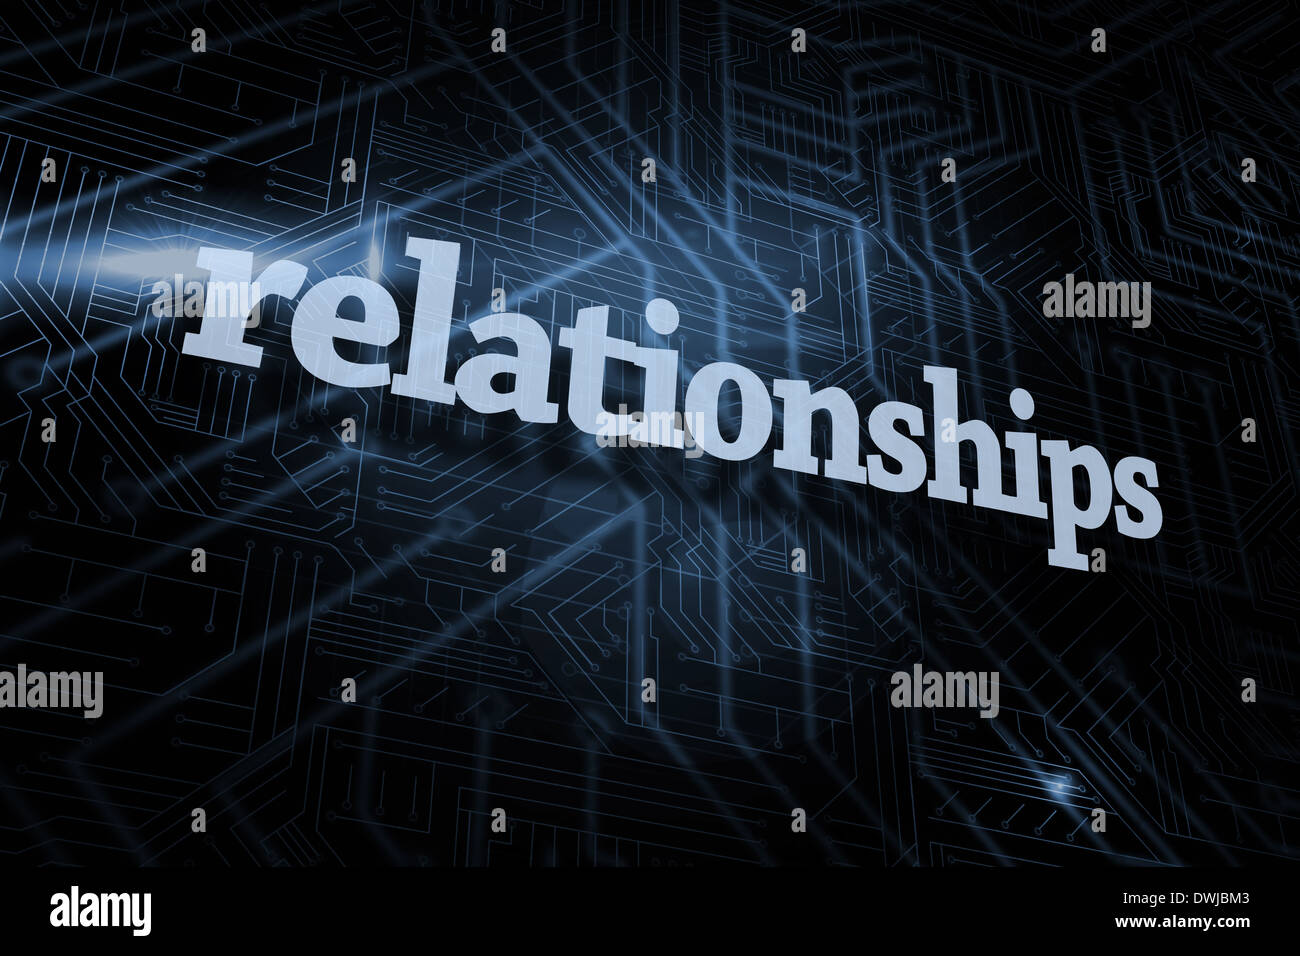 Relationships against futuristic black and blue background - Stock Image